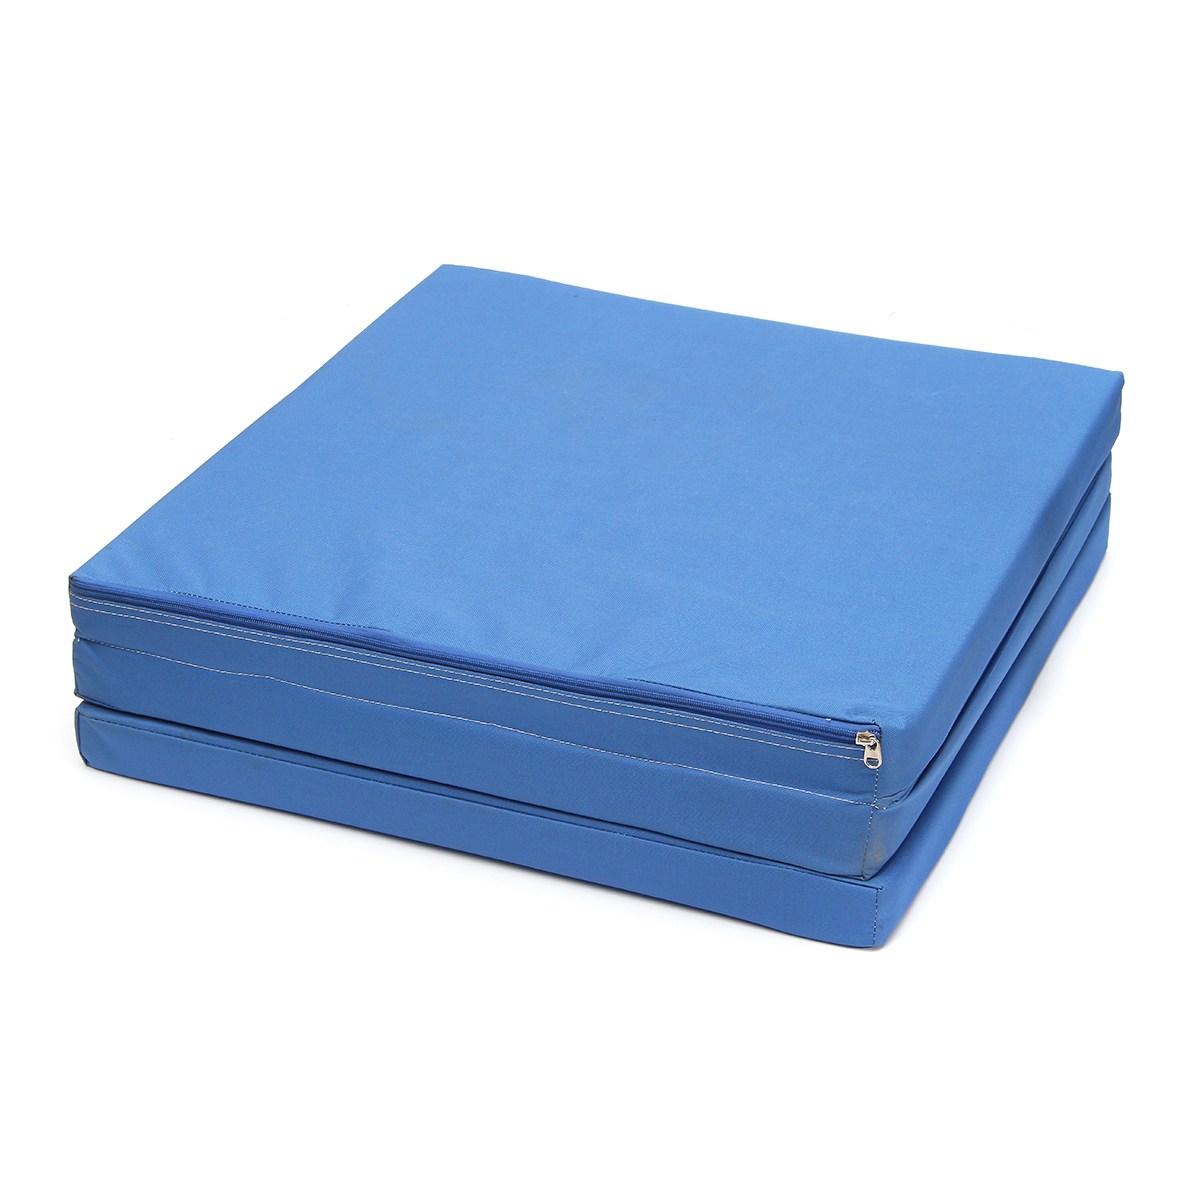 High Density Foam Folding Gym Mat Yoga Tumbling Comfort